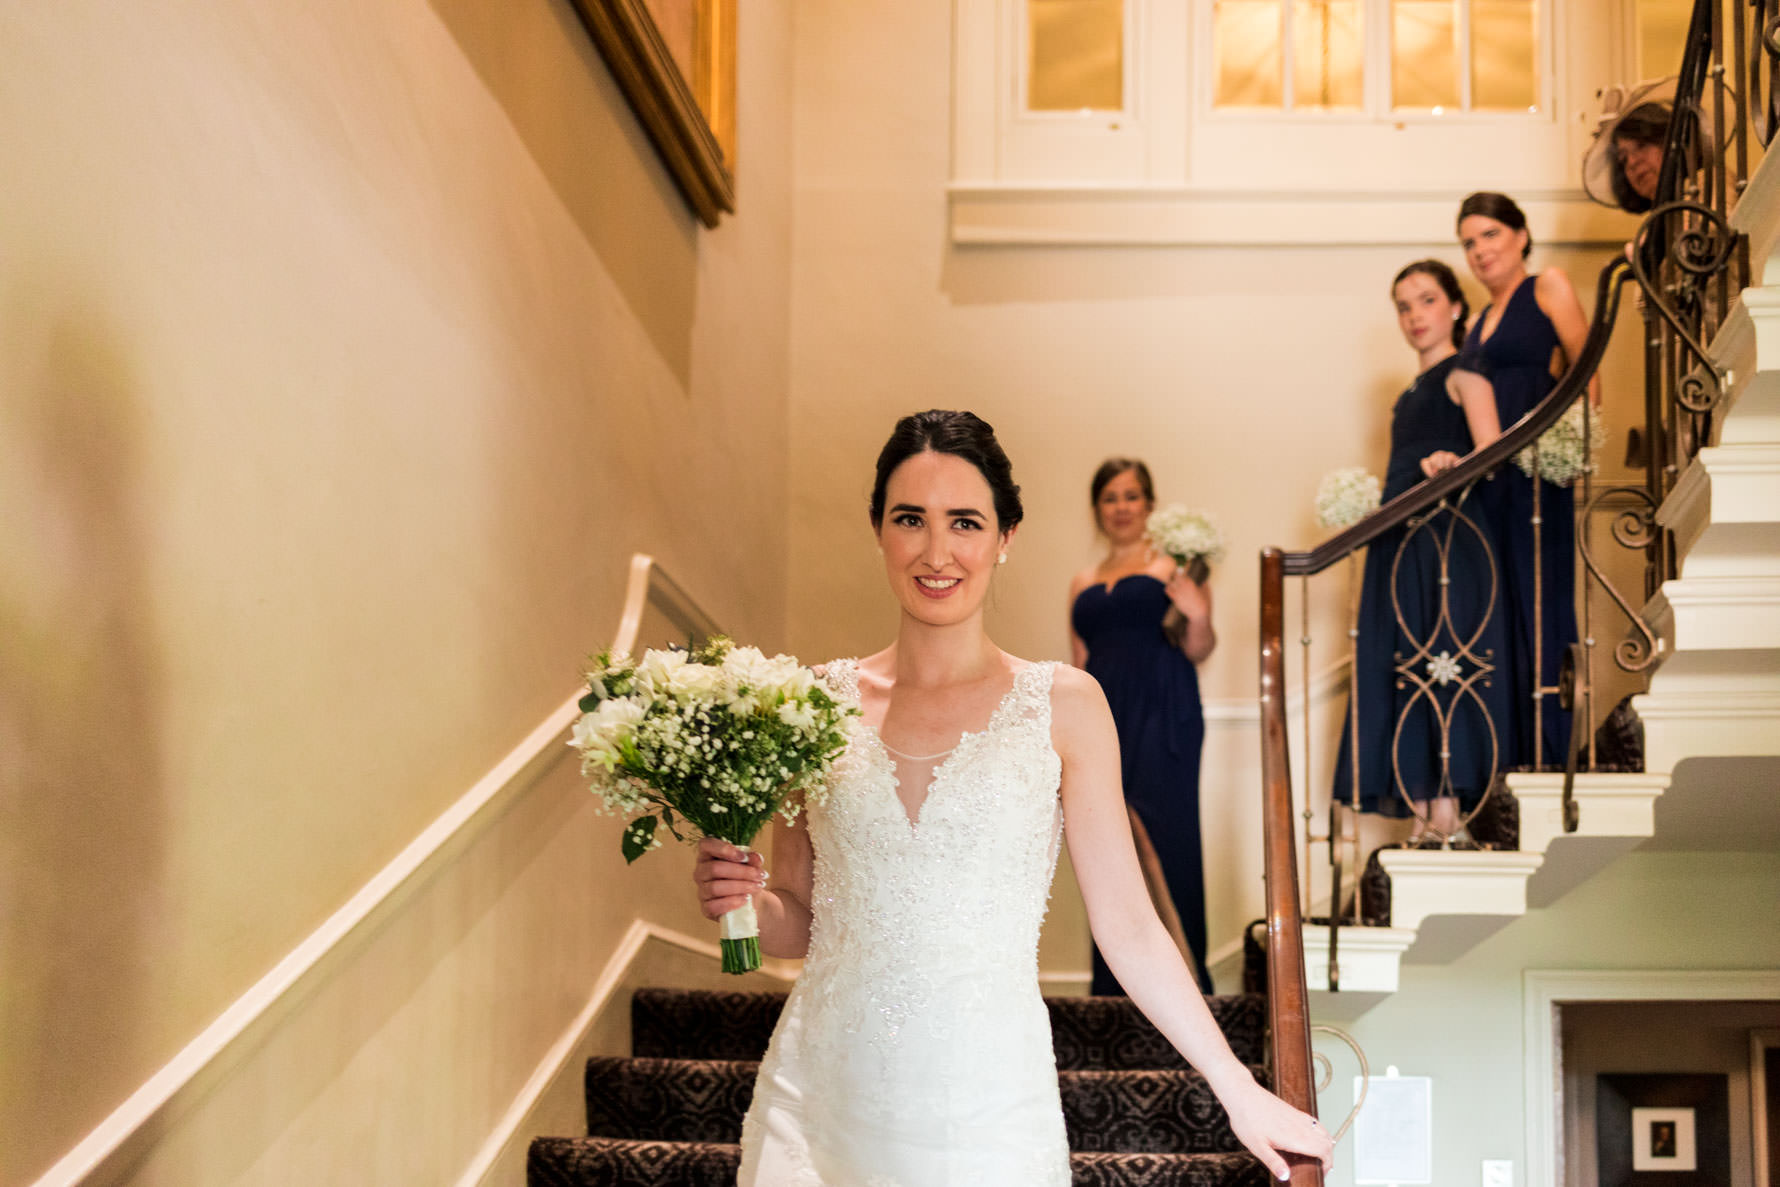 bride walking down staircase with bridesmaids following behind